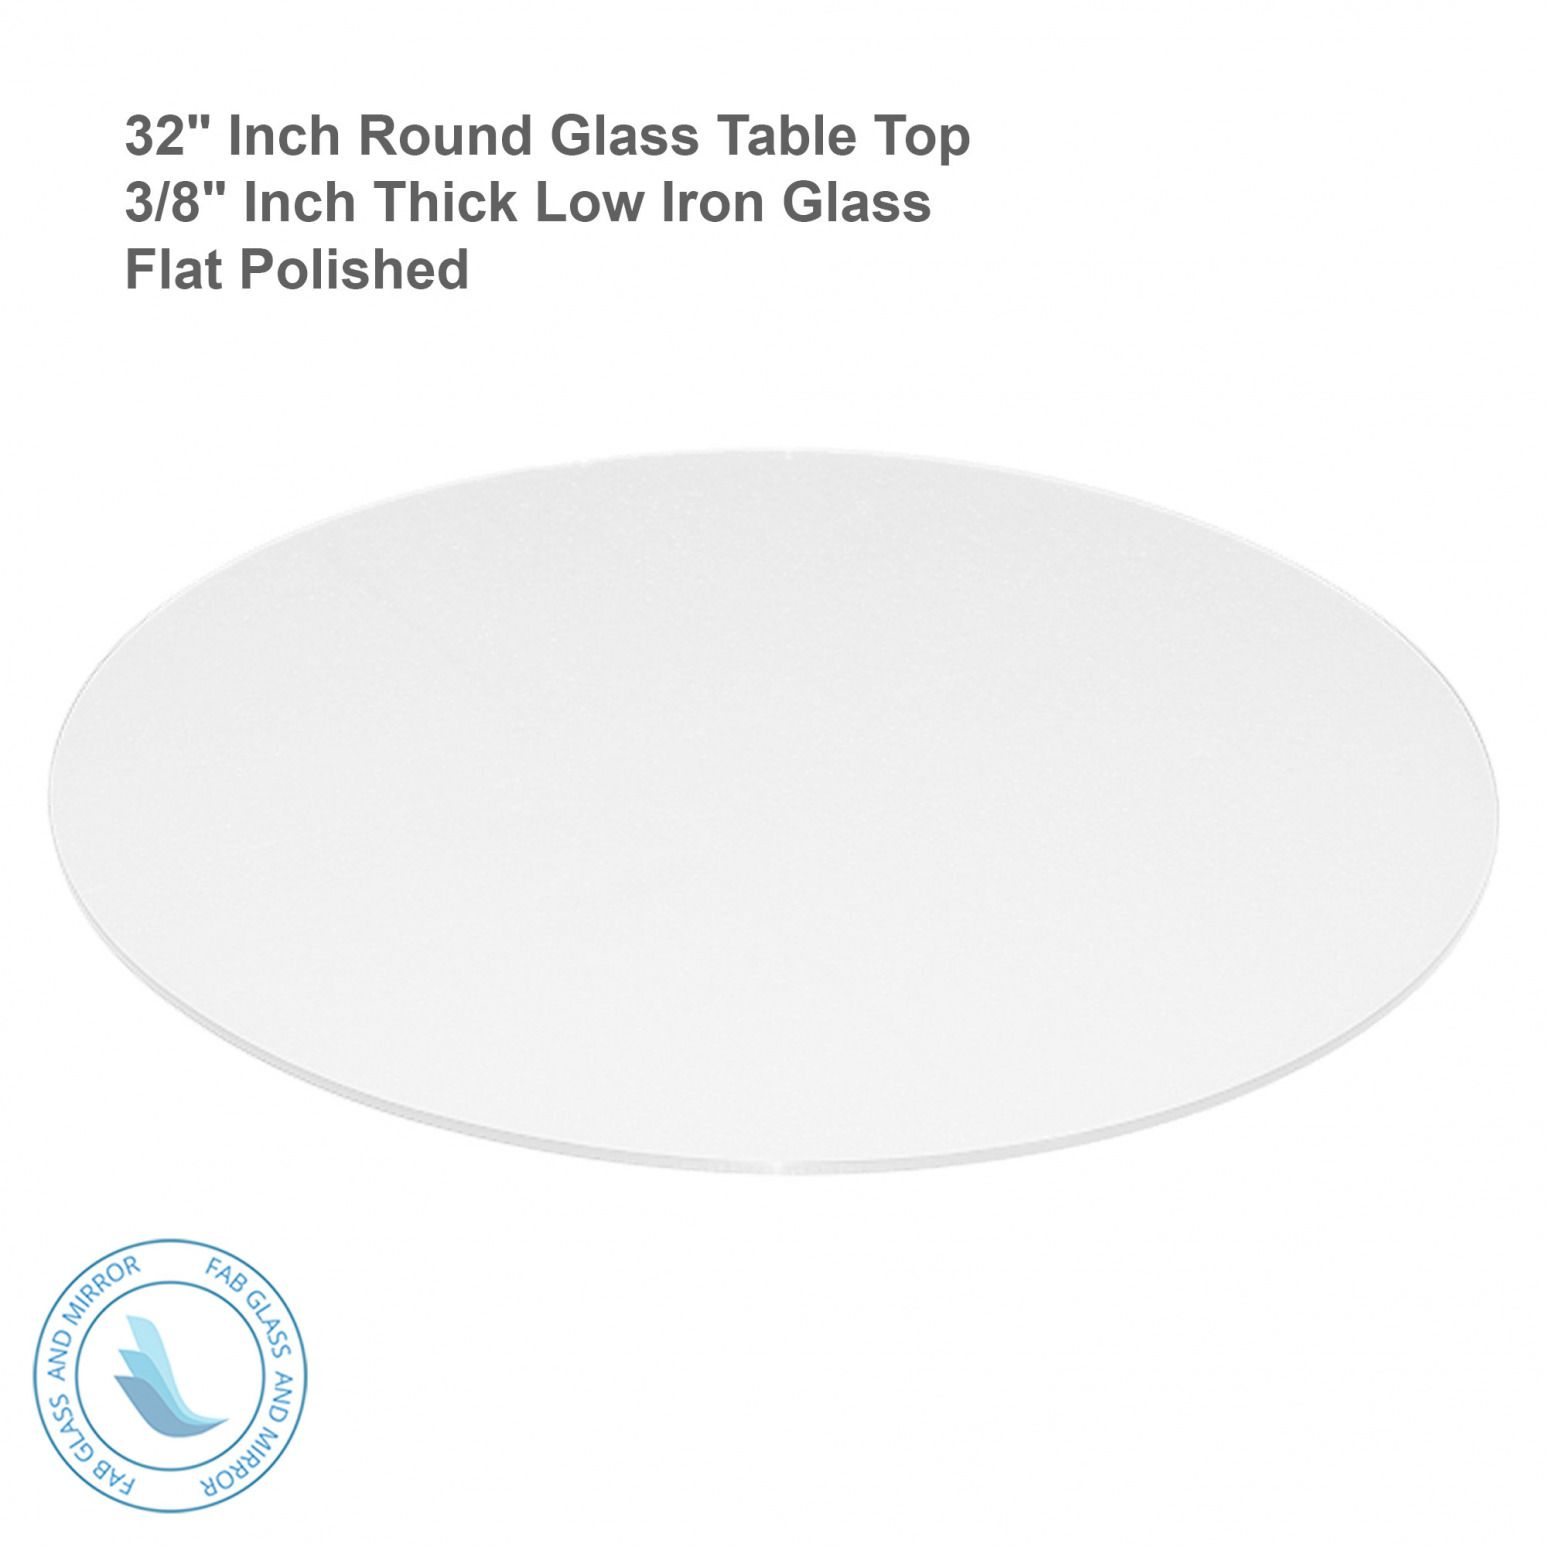 Beau 100+ 32 Inch Round Glass Table Top   Best Paint For Wood Furniture Check  More